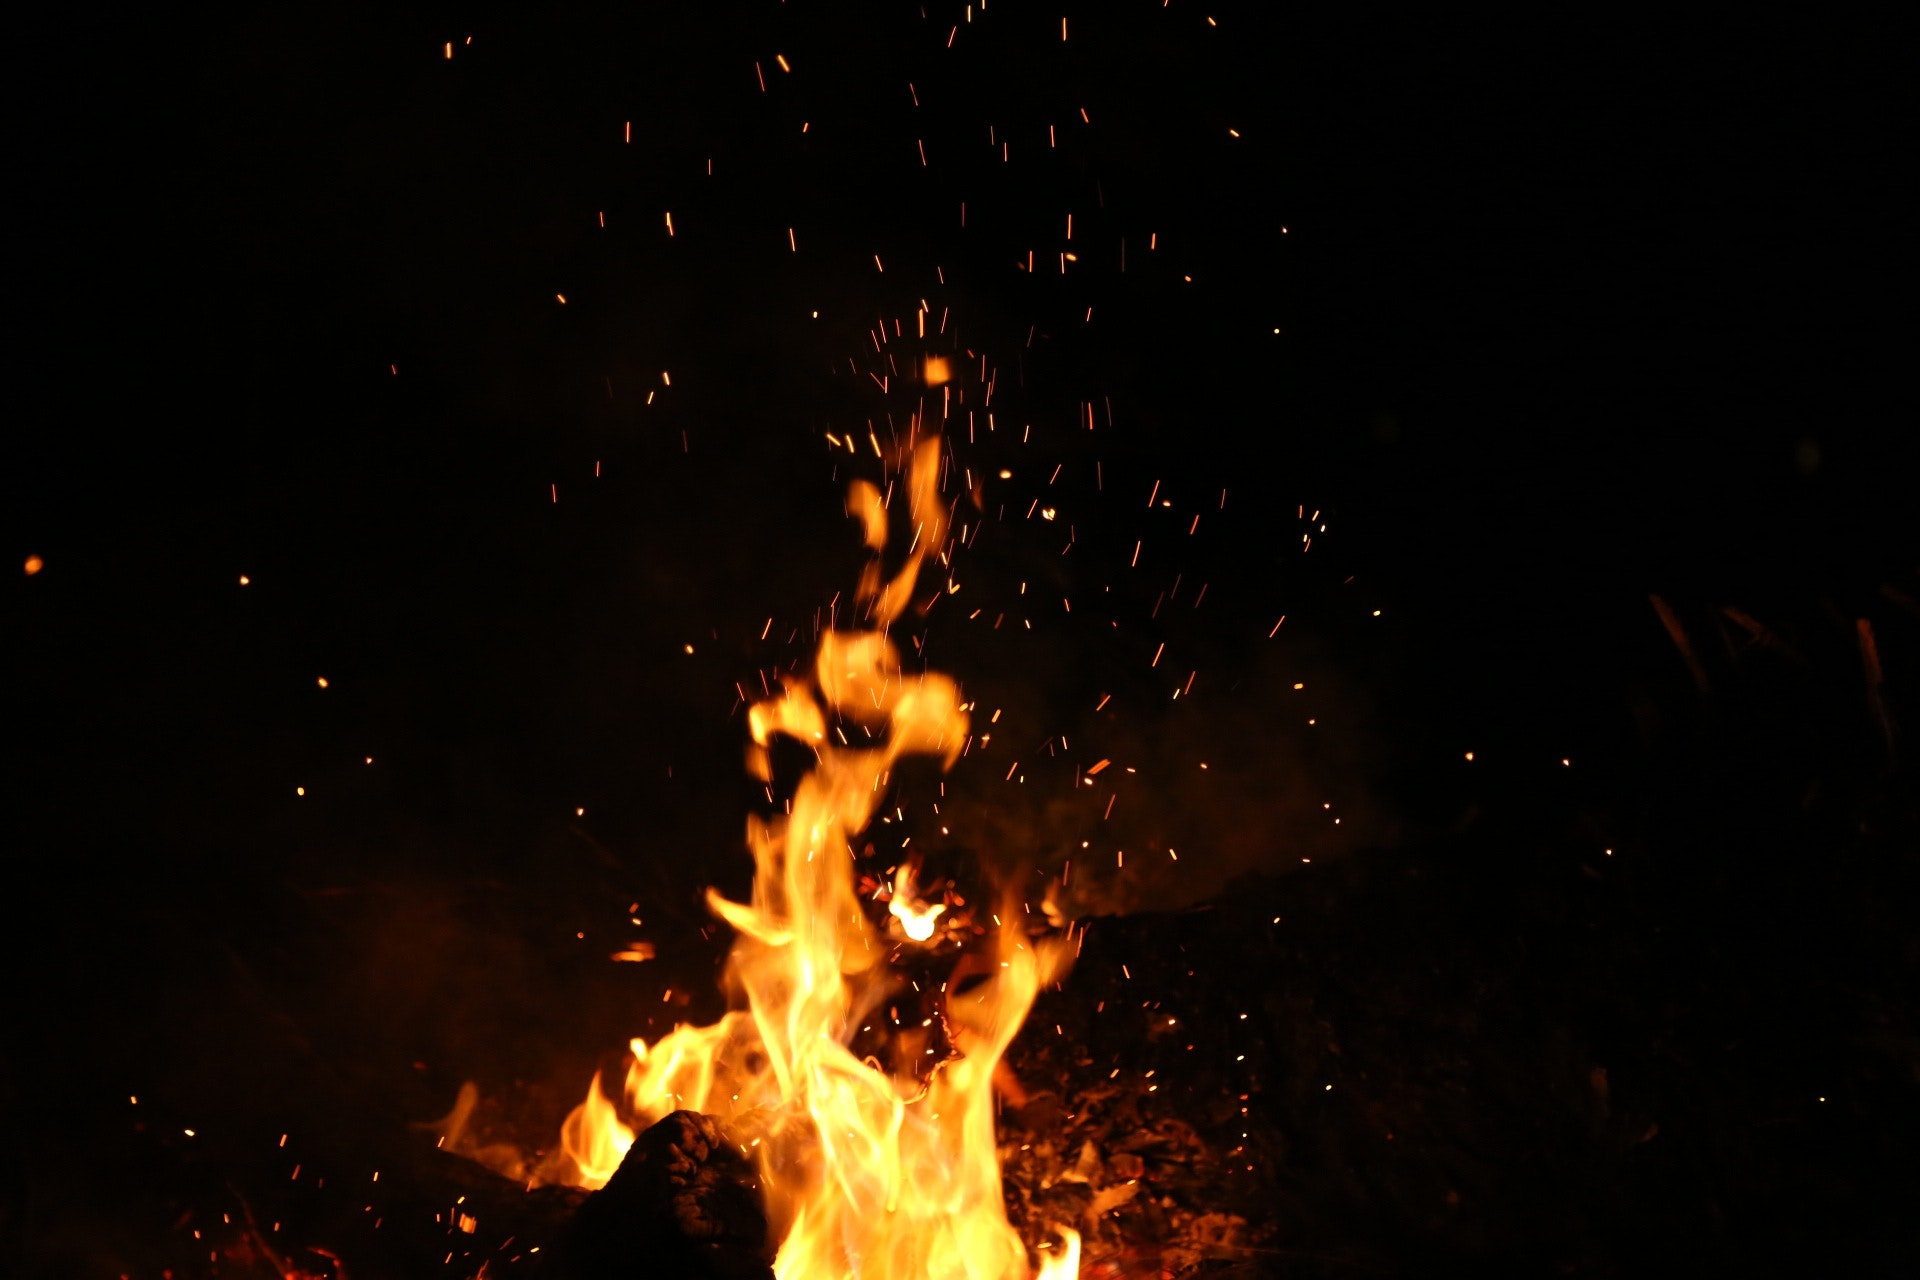 night-fire-burning-sparks-110867.jpg